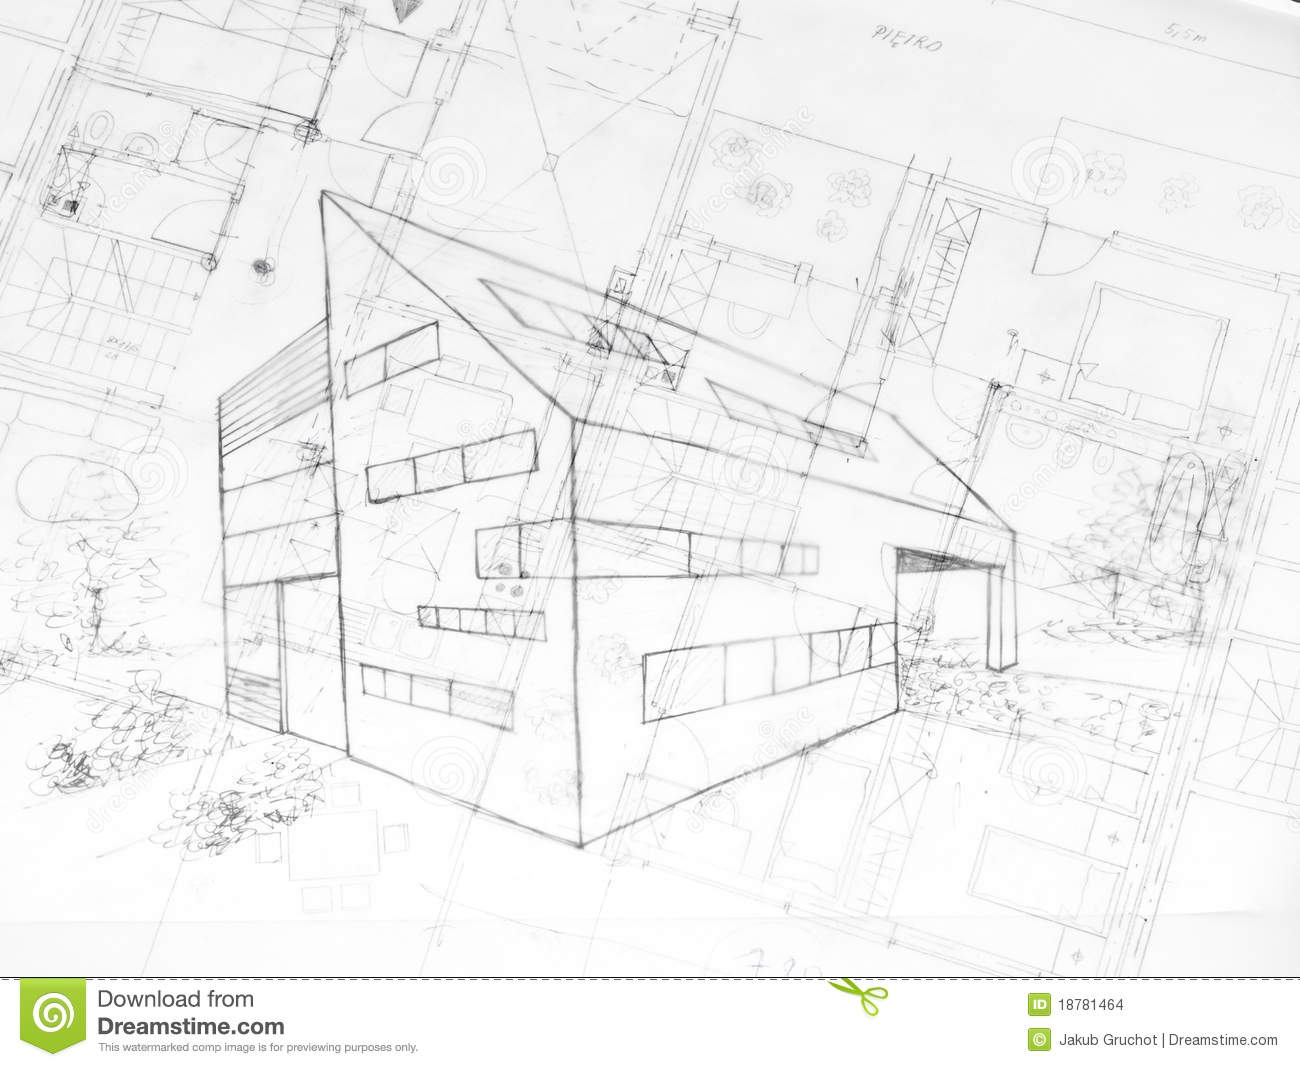 Drawing od a modern building architecture plans stock for L architecture moderne plan